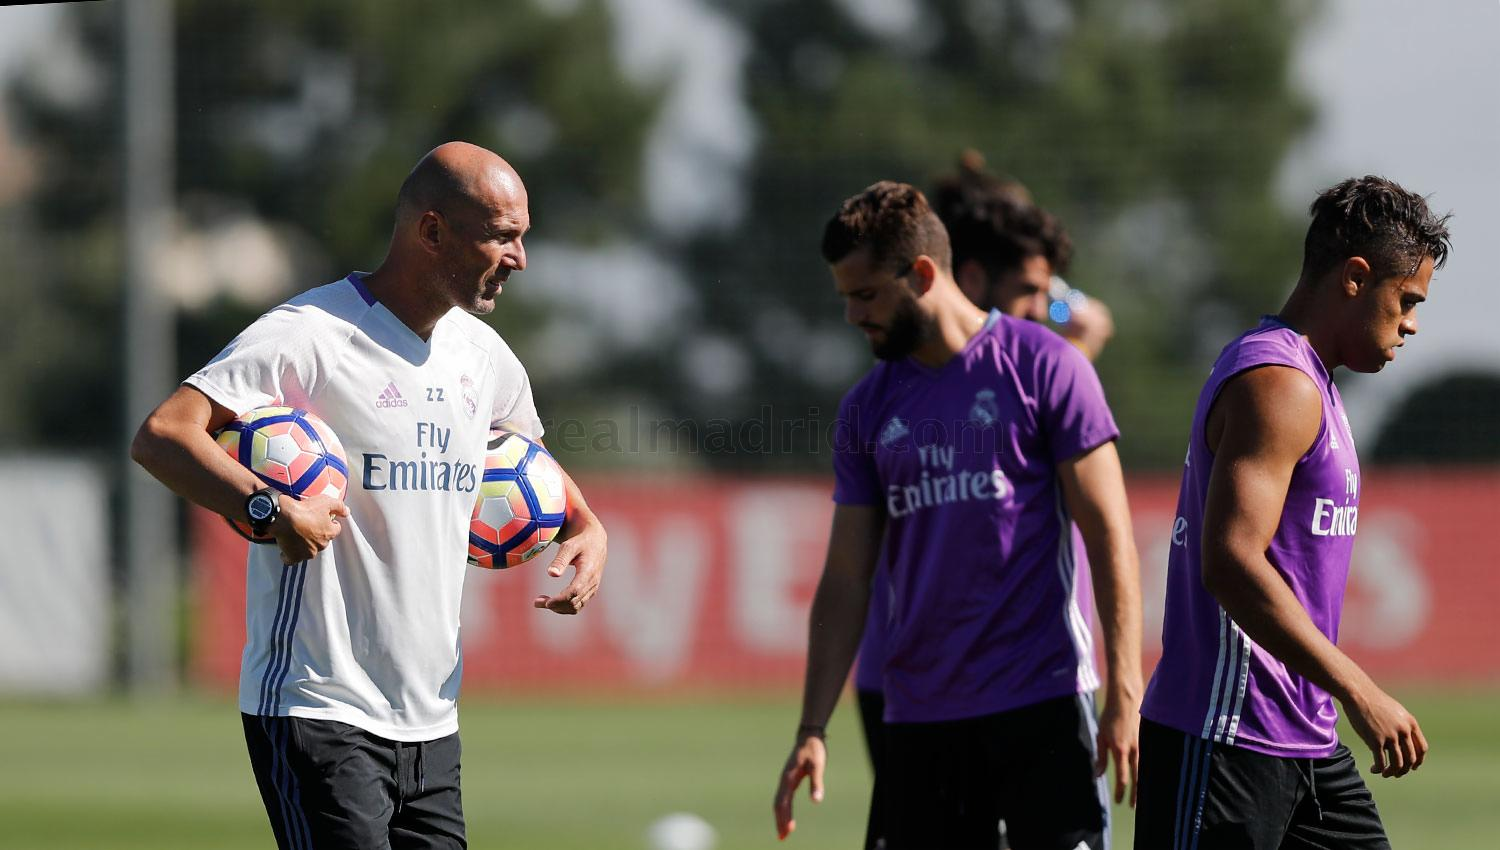 Real Madrid - Entrenamiento del Real Madrid - 18-08-2016